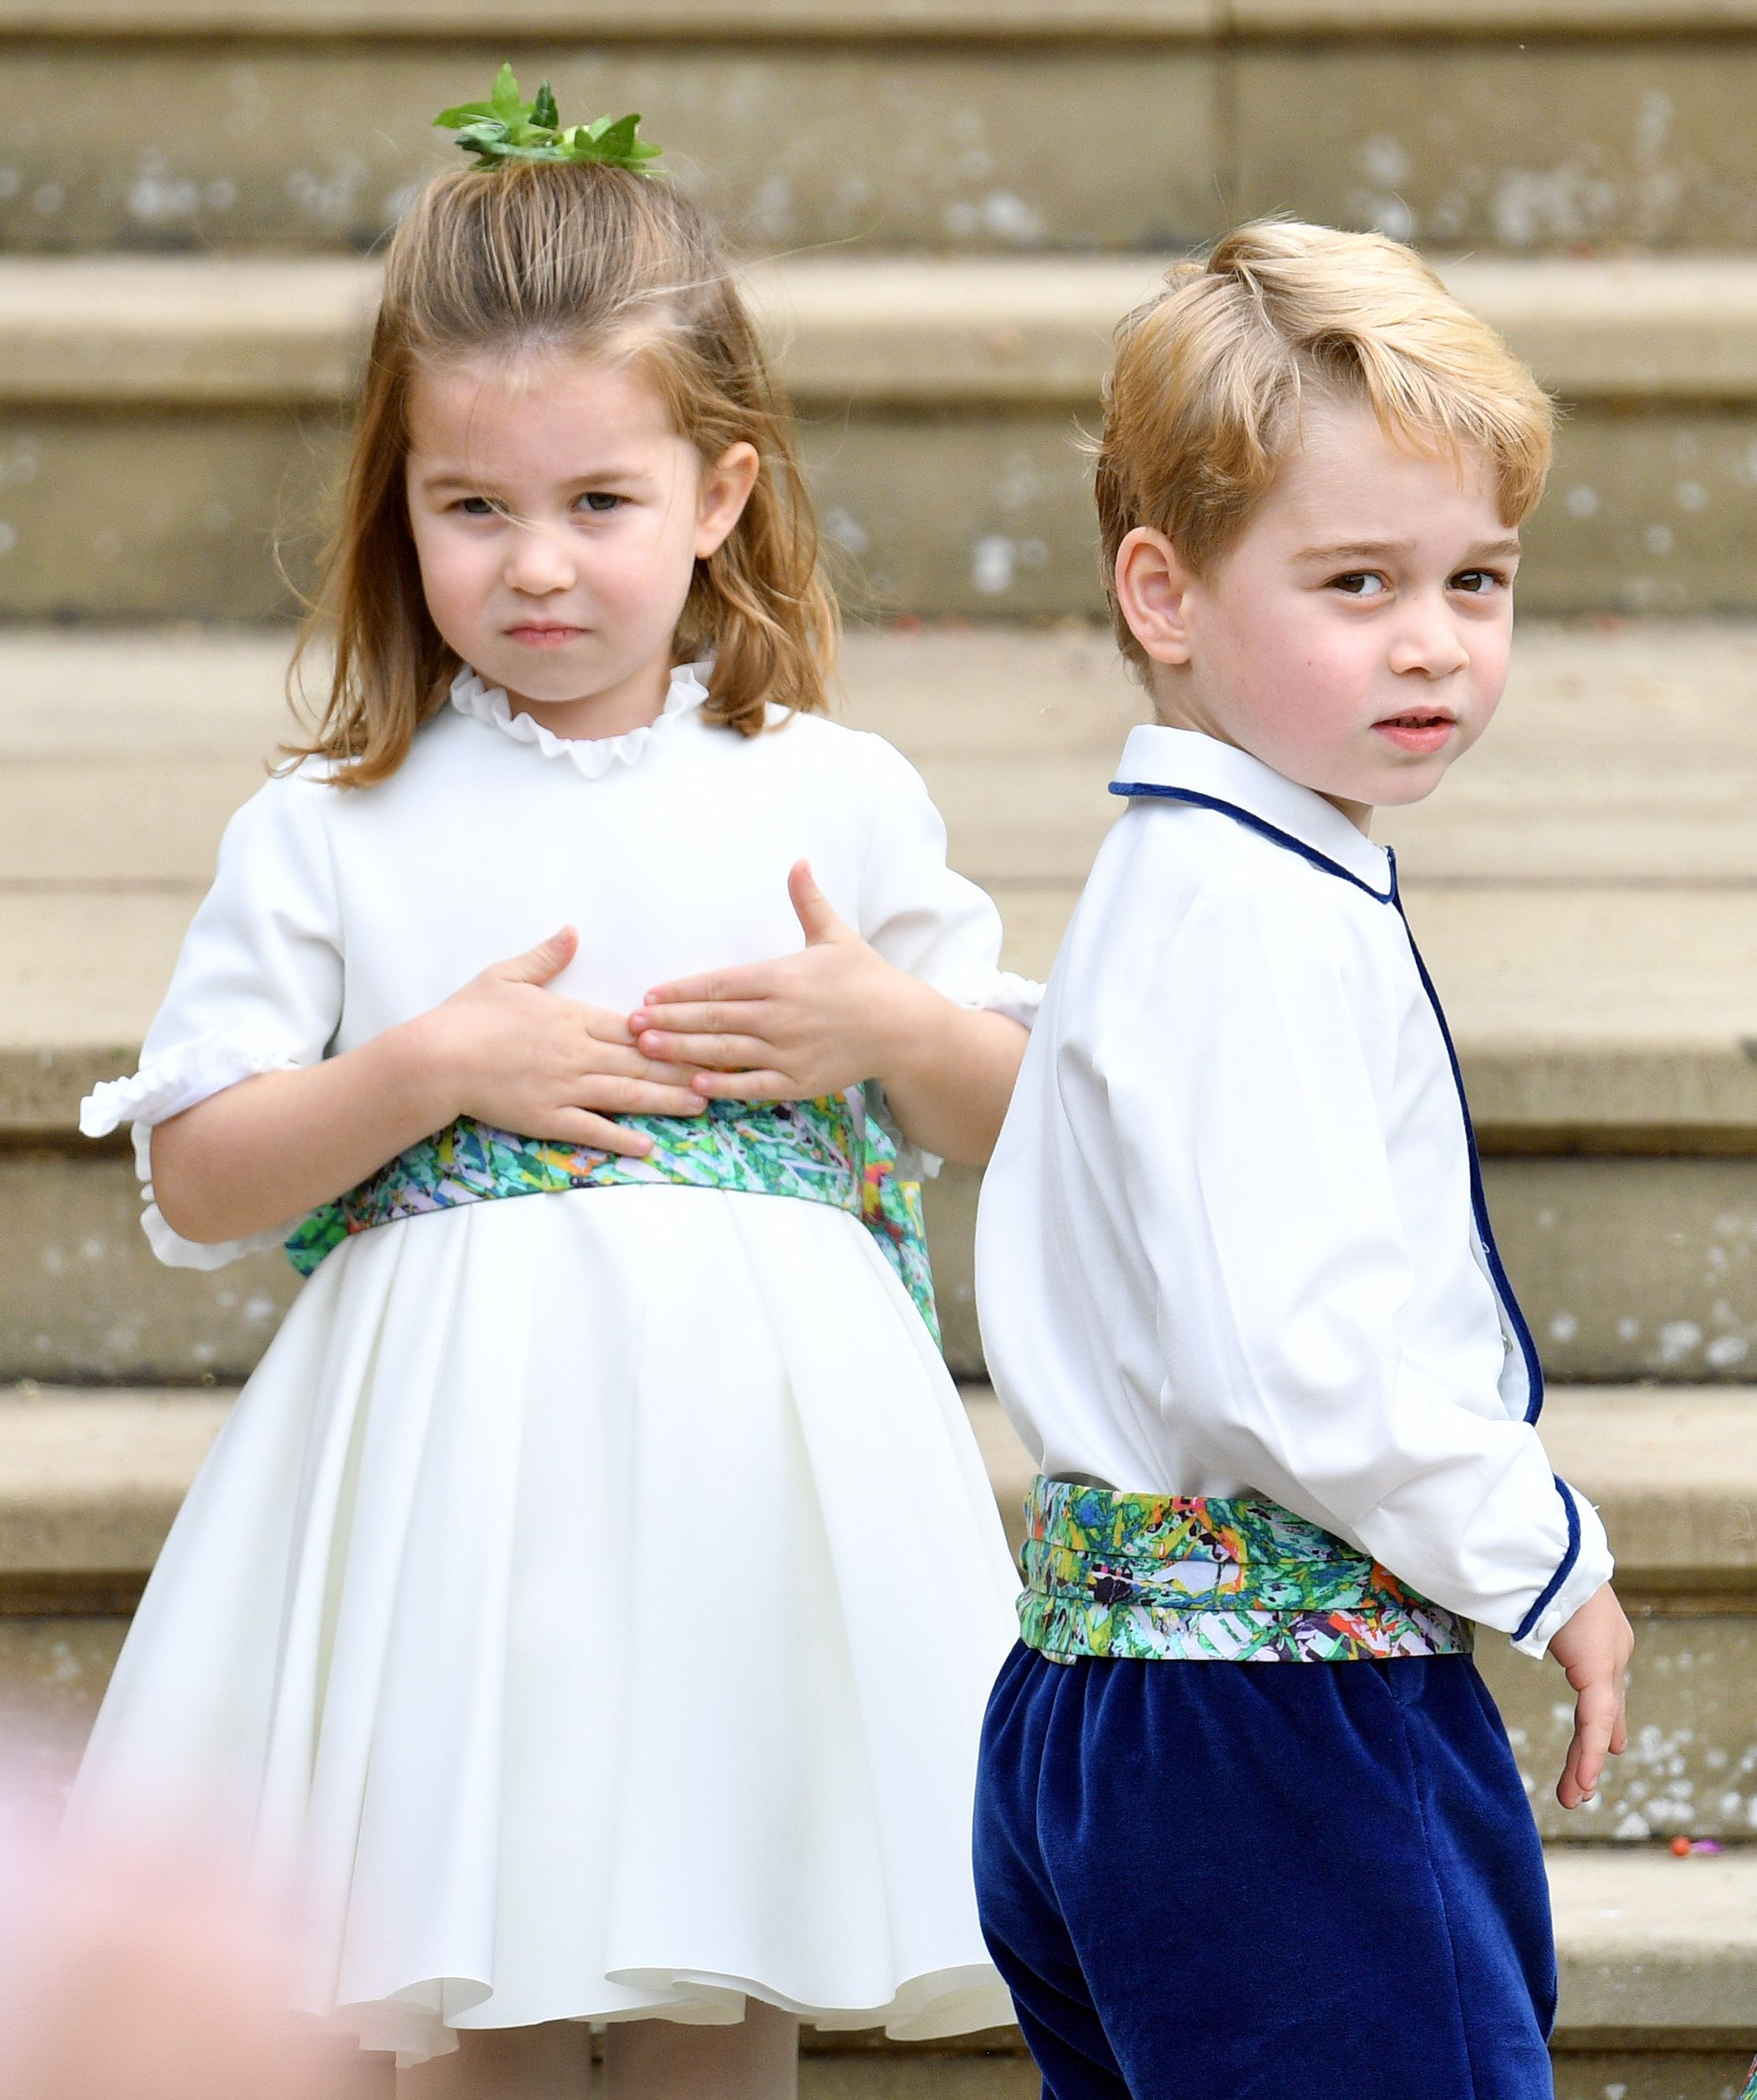 40 Surprising Rules the Royal Children Have to Follow